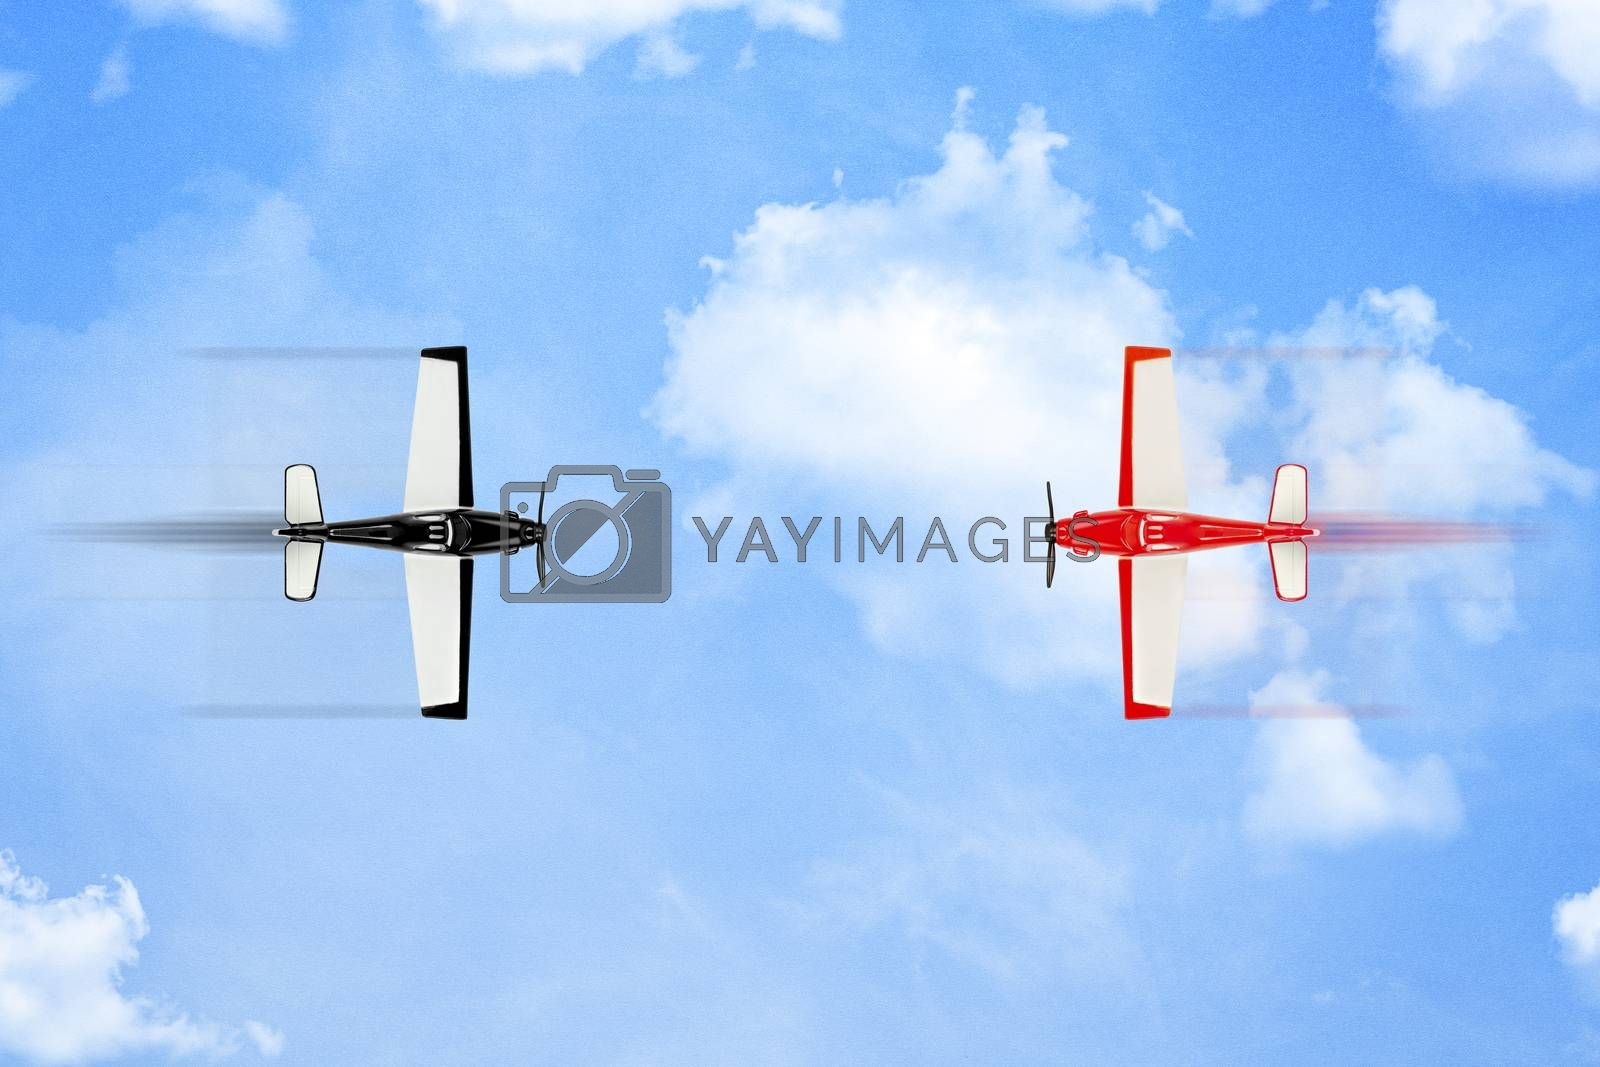 red plane about to  crash into black one on paper surface with clouds, rivalry concept